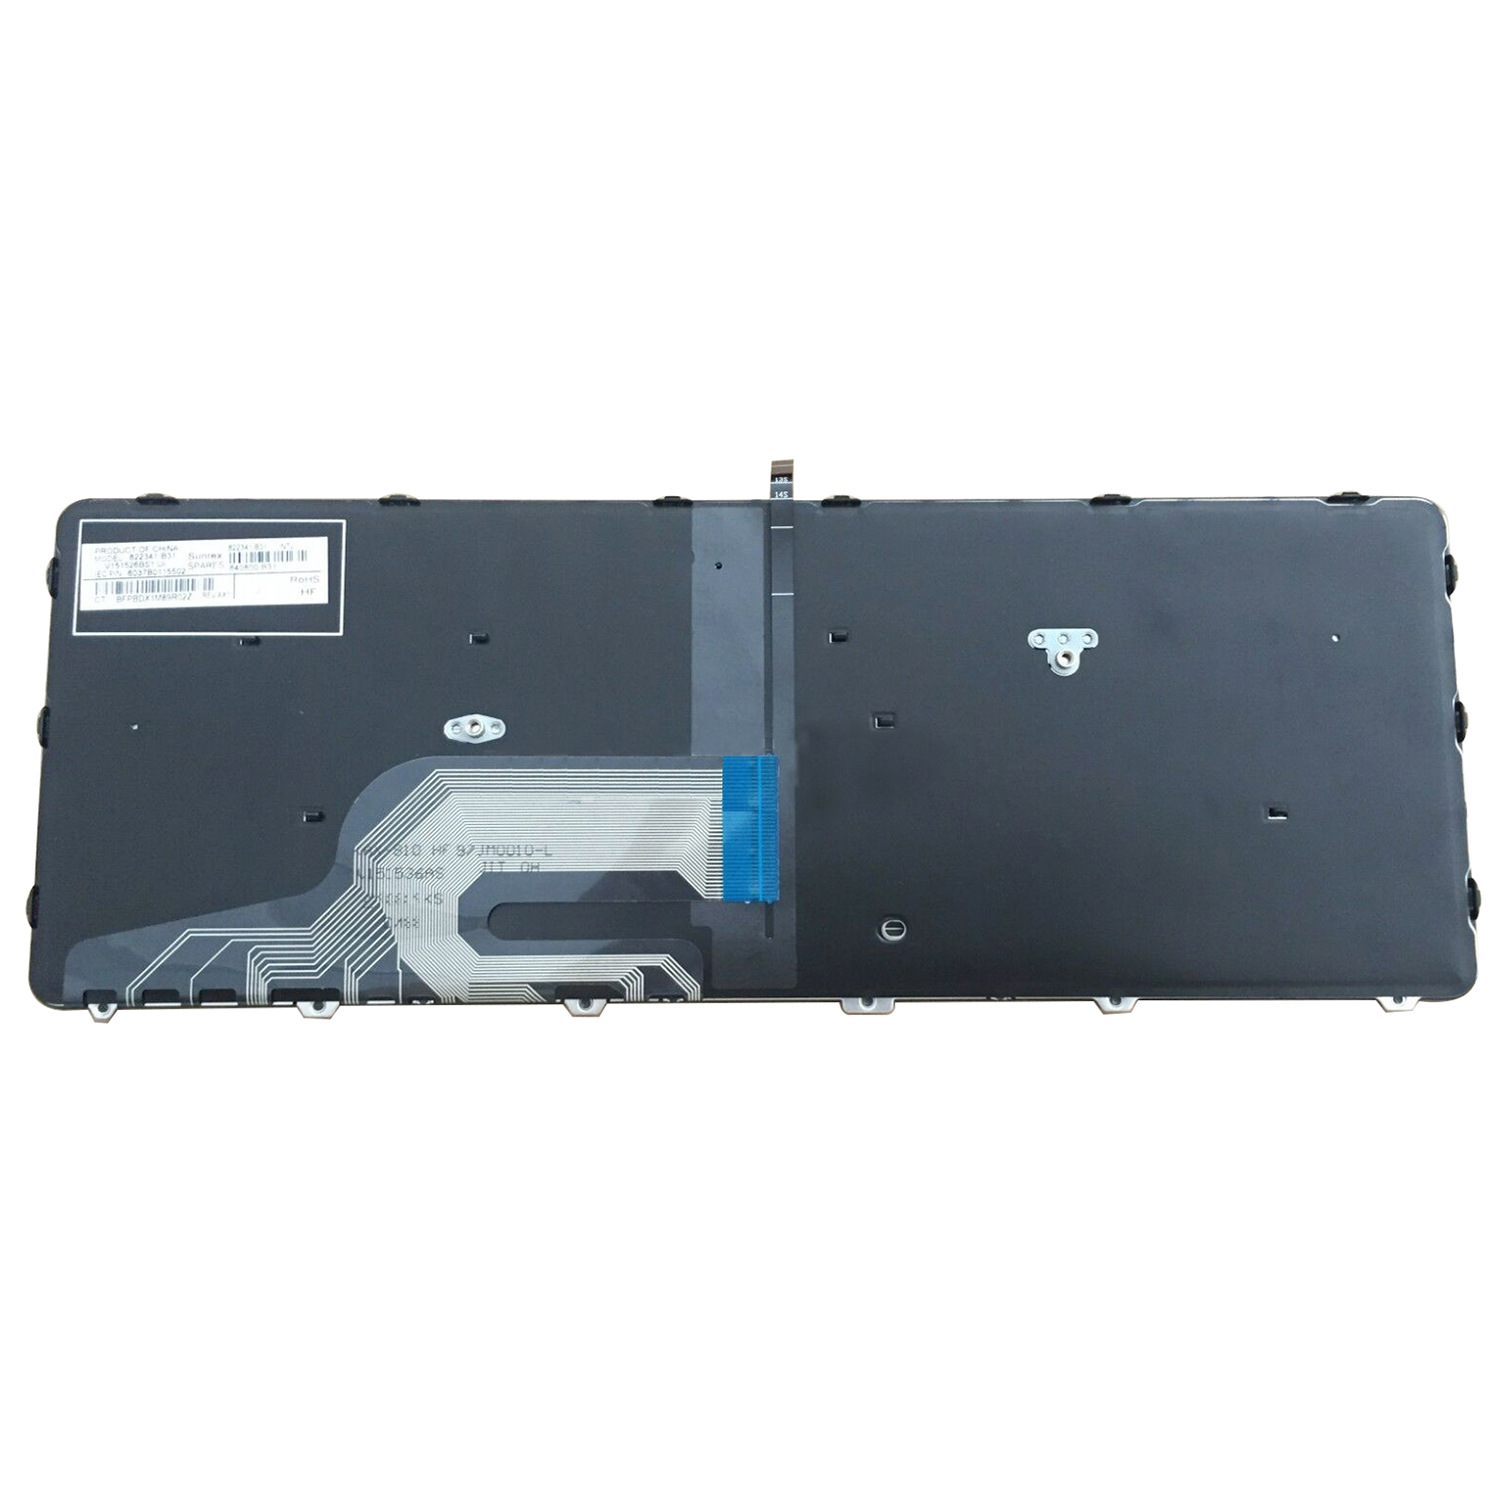 1 Year Warranty AUTENS Replacement US Keyboard Backlight for HP Probook 430 G3//430 G4//440 G3//440 G4//445 G3//640 G2//645 G2 Laptop